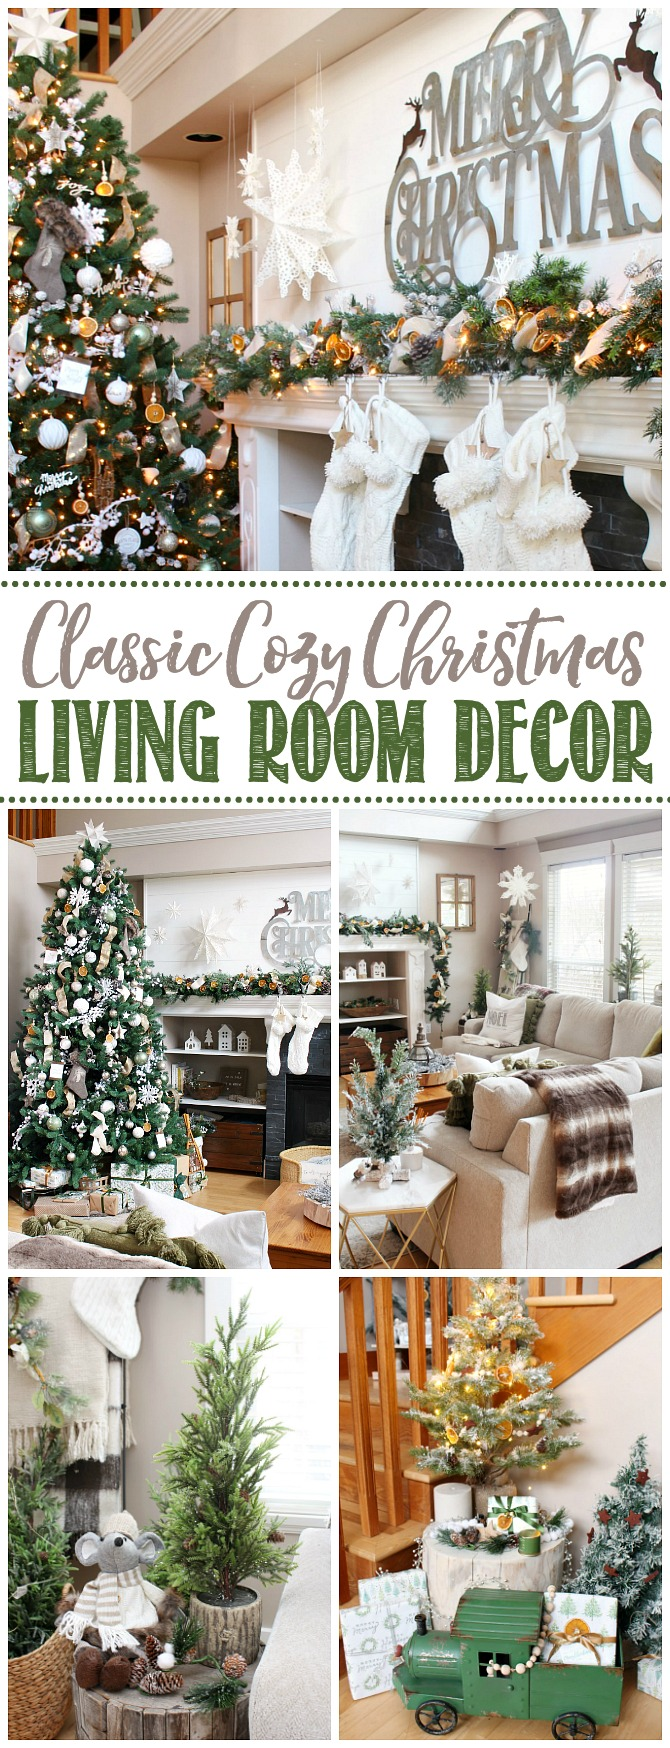 Collage of cozy Christmas decor ideas.